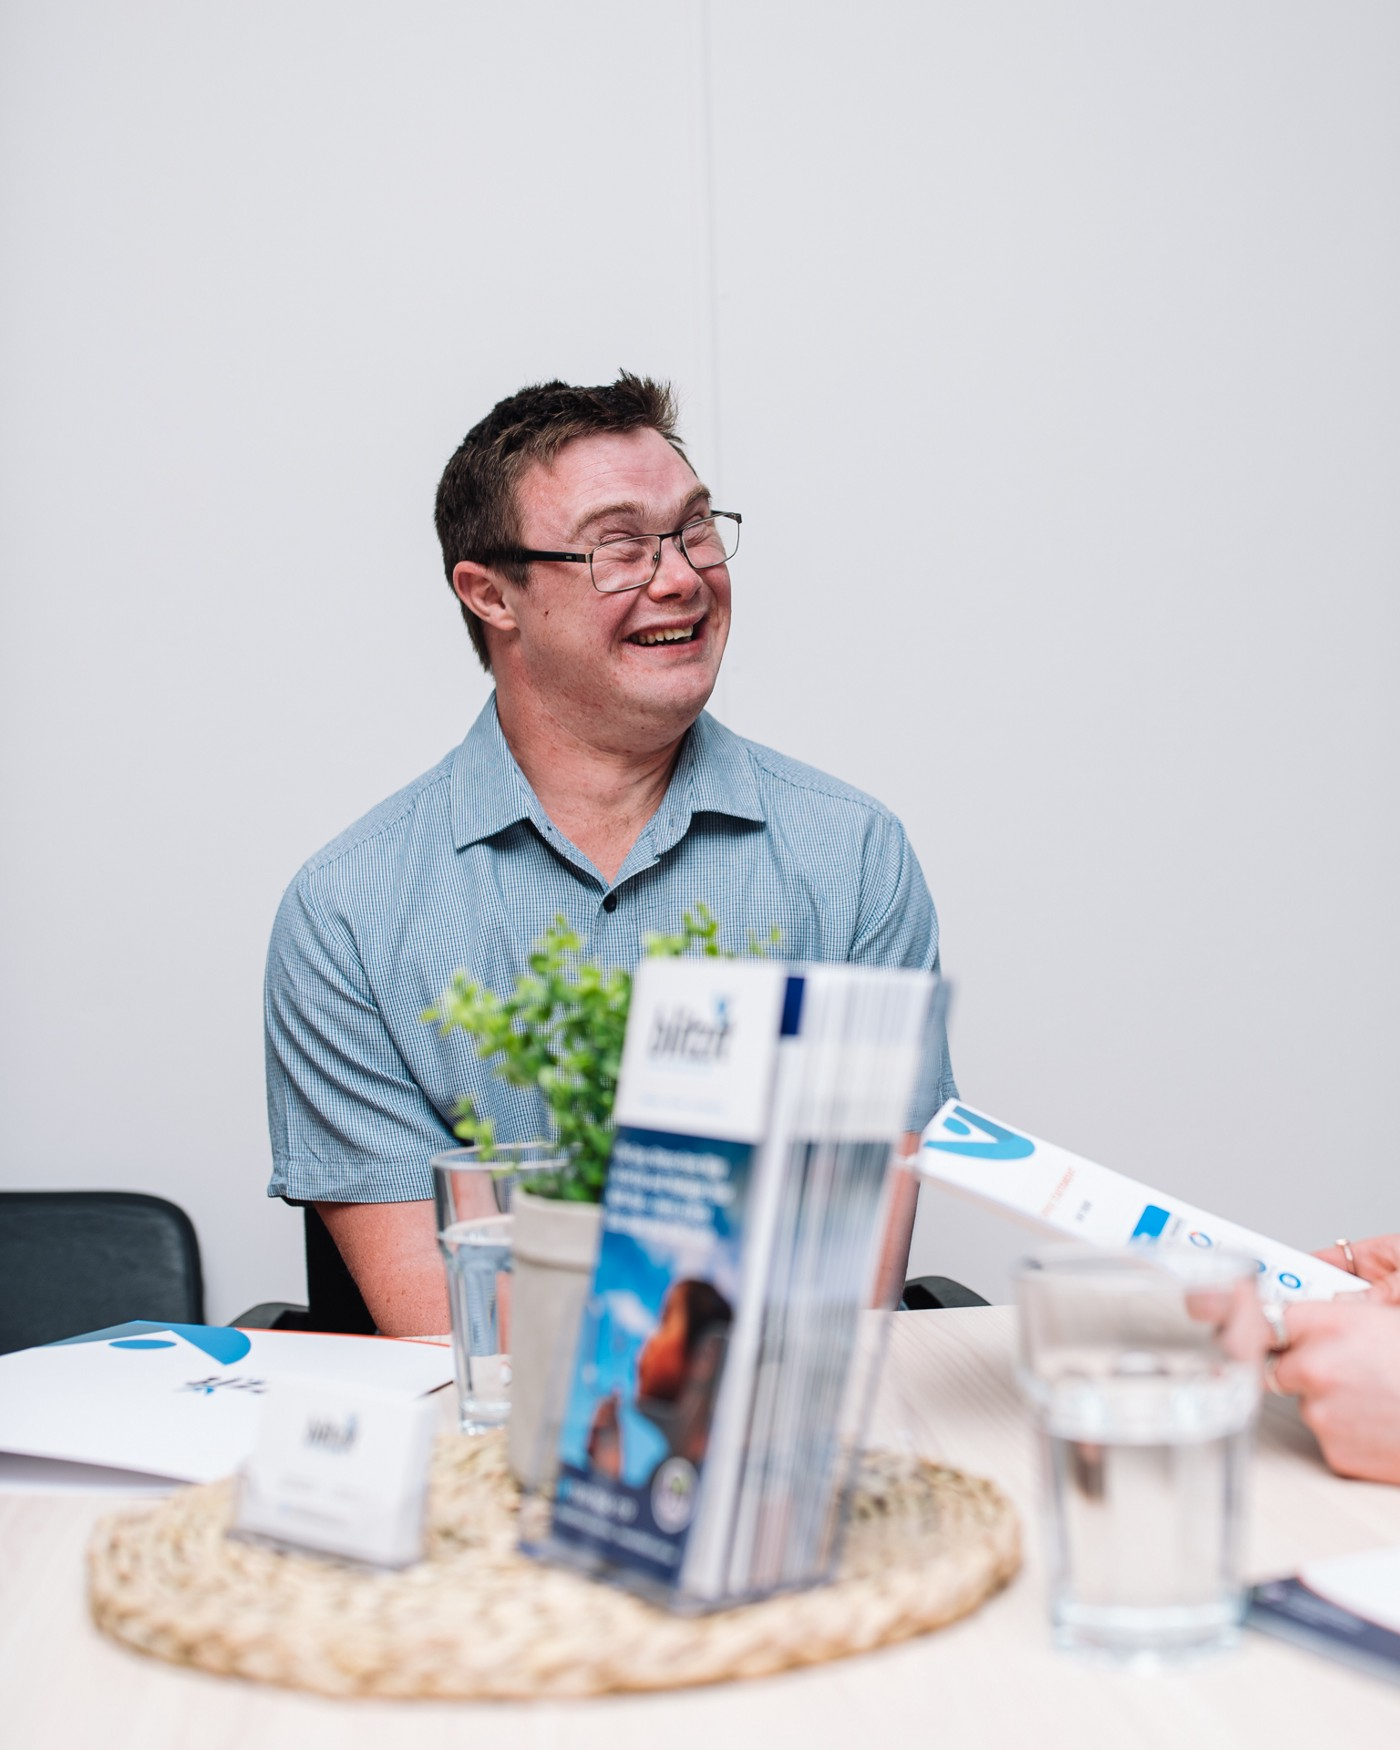 A male NDIS participants sits at a table,  with a plain white background. He is smiling, has short, brown hair, glasses  and a light blue shirt. The table has various items, including a green plant, Blitzit flyers and a glass of water.